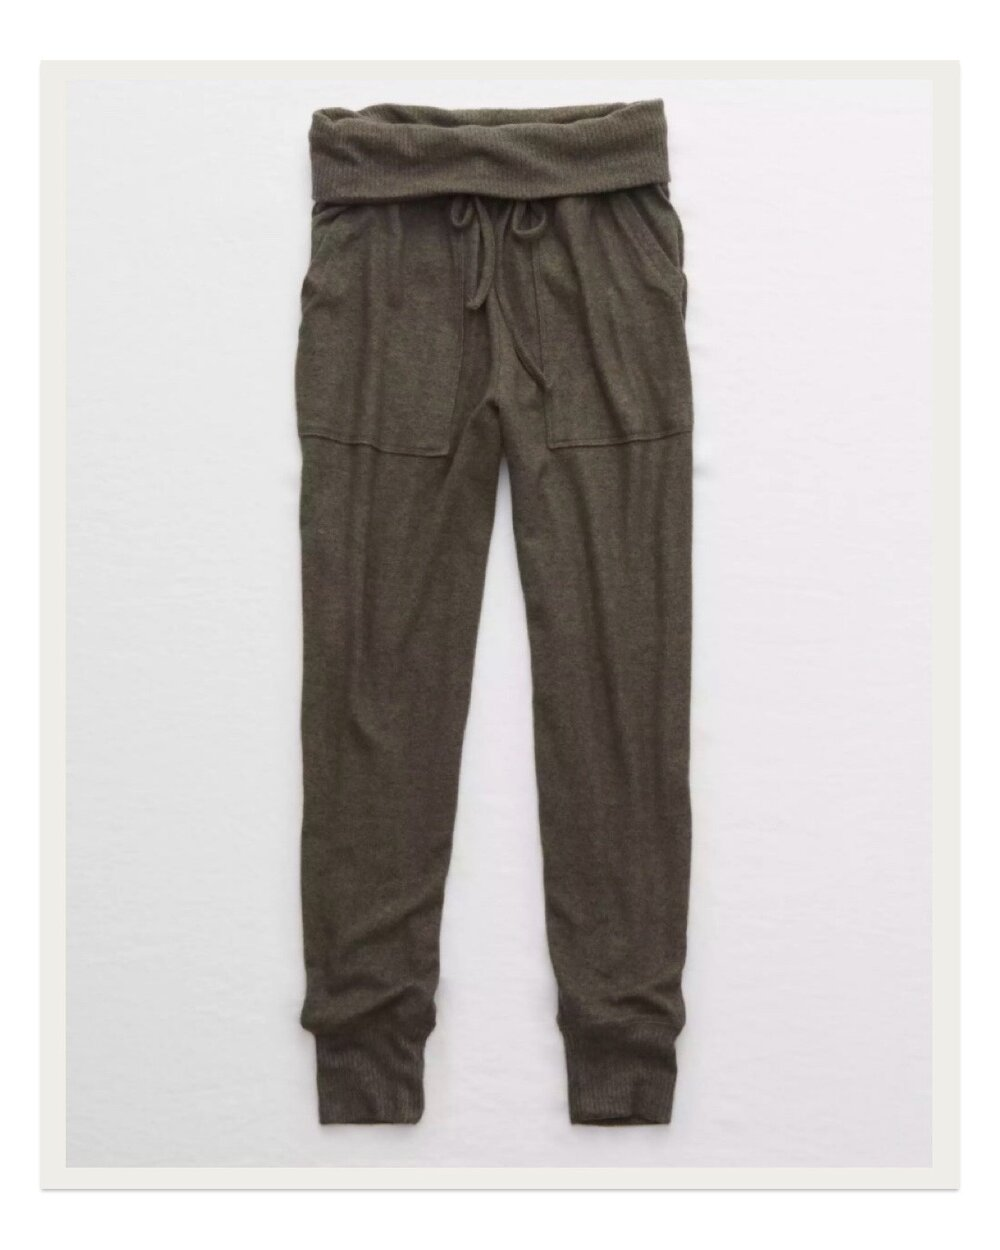 The details on these Aerie plush joggers give them a street-acceptable look while still maintaining a high cozy level. This color in particular looks so elevated in comparison to your average sweatpants.